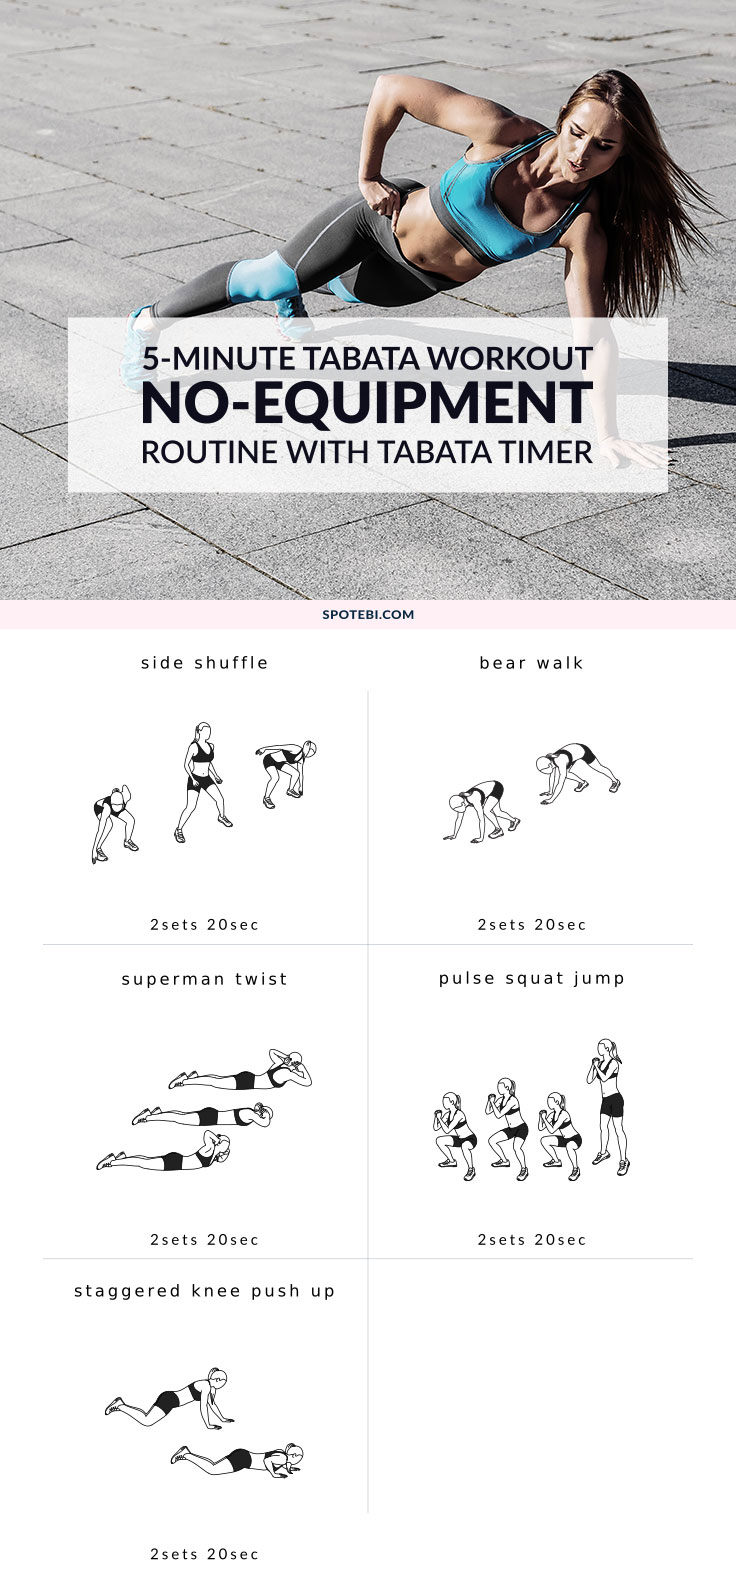 Shuffle, jump and squat your way to a trimmer and leaner body with these 5 butt-kicking Tabata exercises! Make every minute count and repeat this 5-minute workout 5 times a day for maximum metabolic and weight loss benefits! https://www.spotebi.com/workout-routines/5-tabata-exercises-get-started/